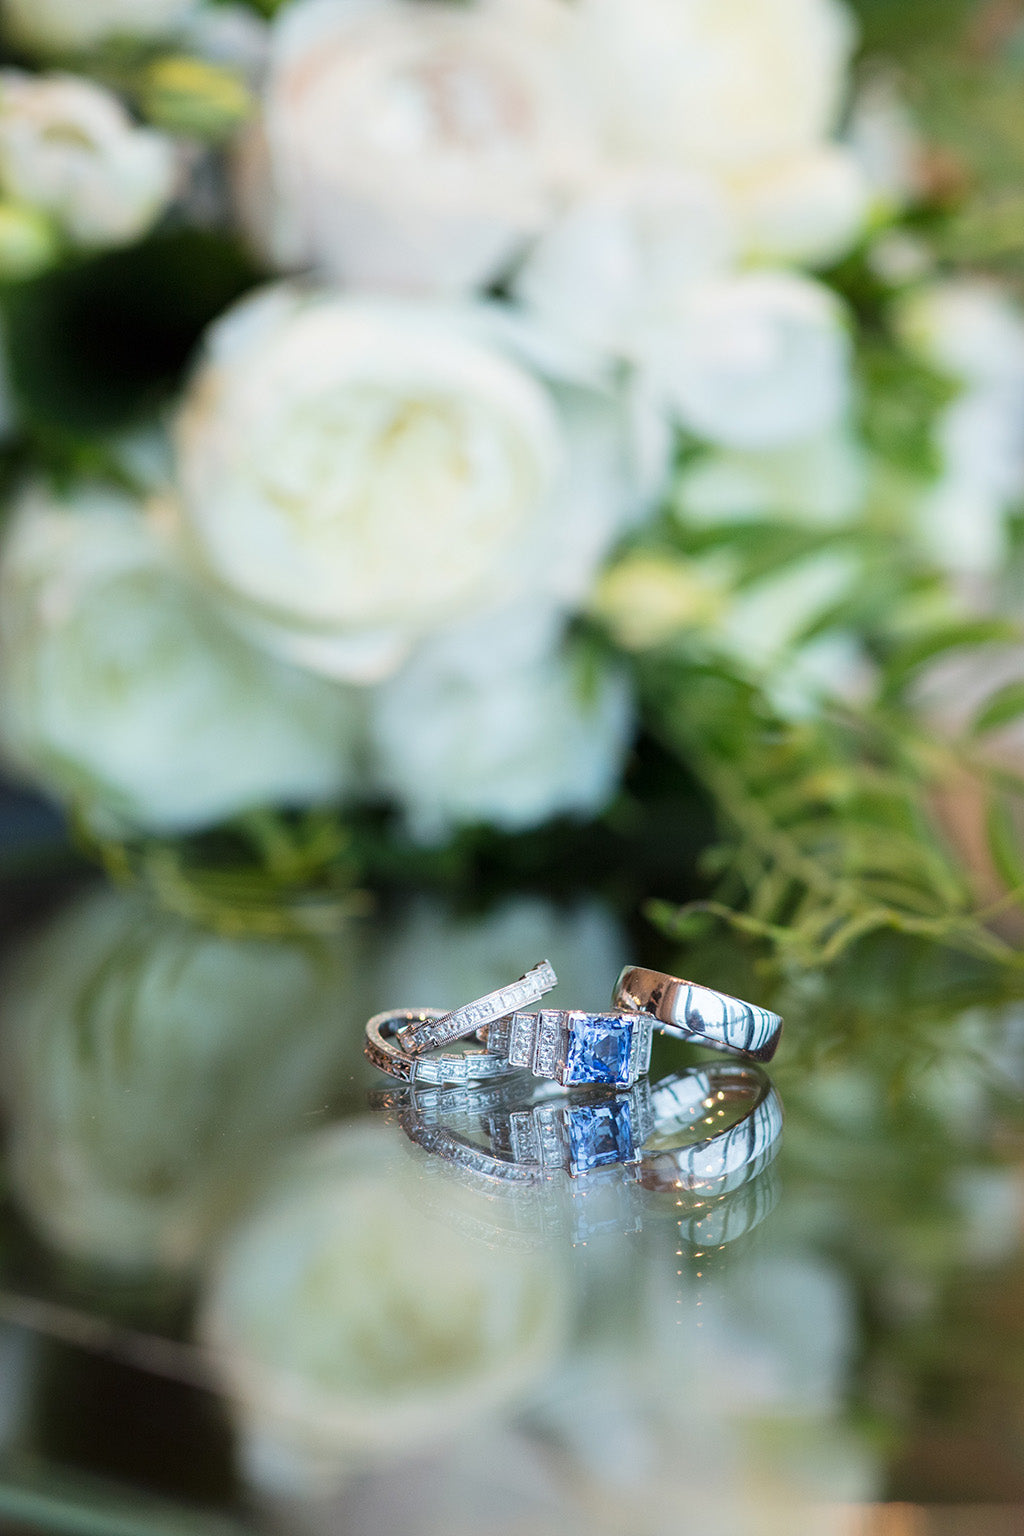 Wedding rings with wedding flowers in background